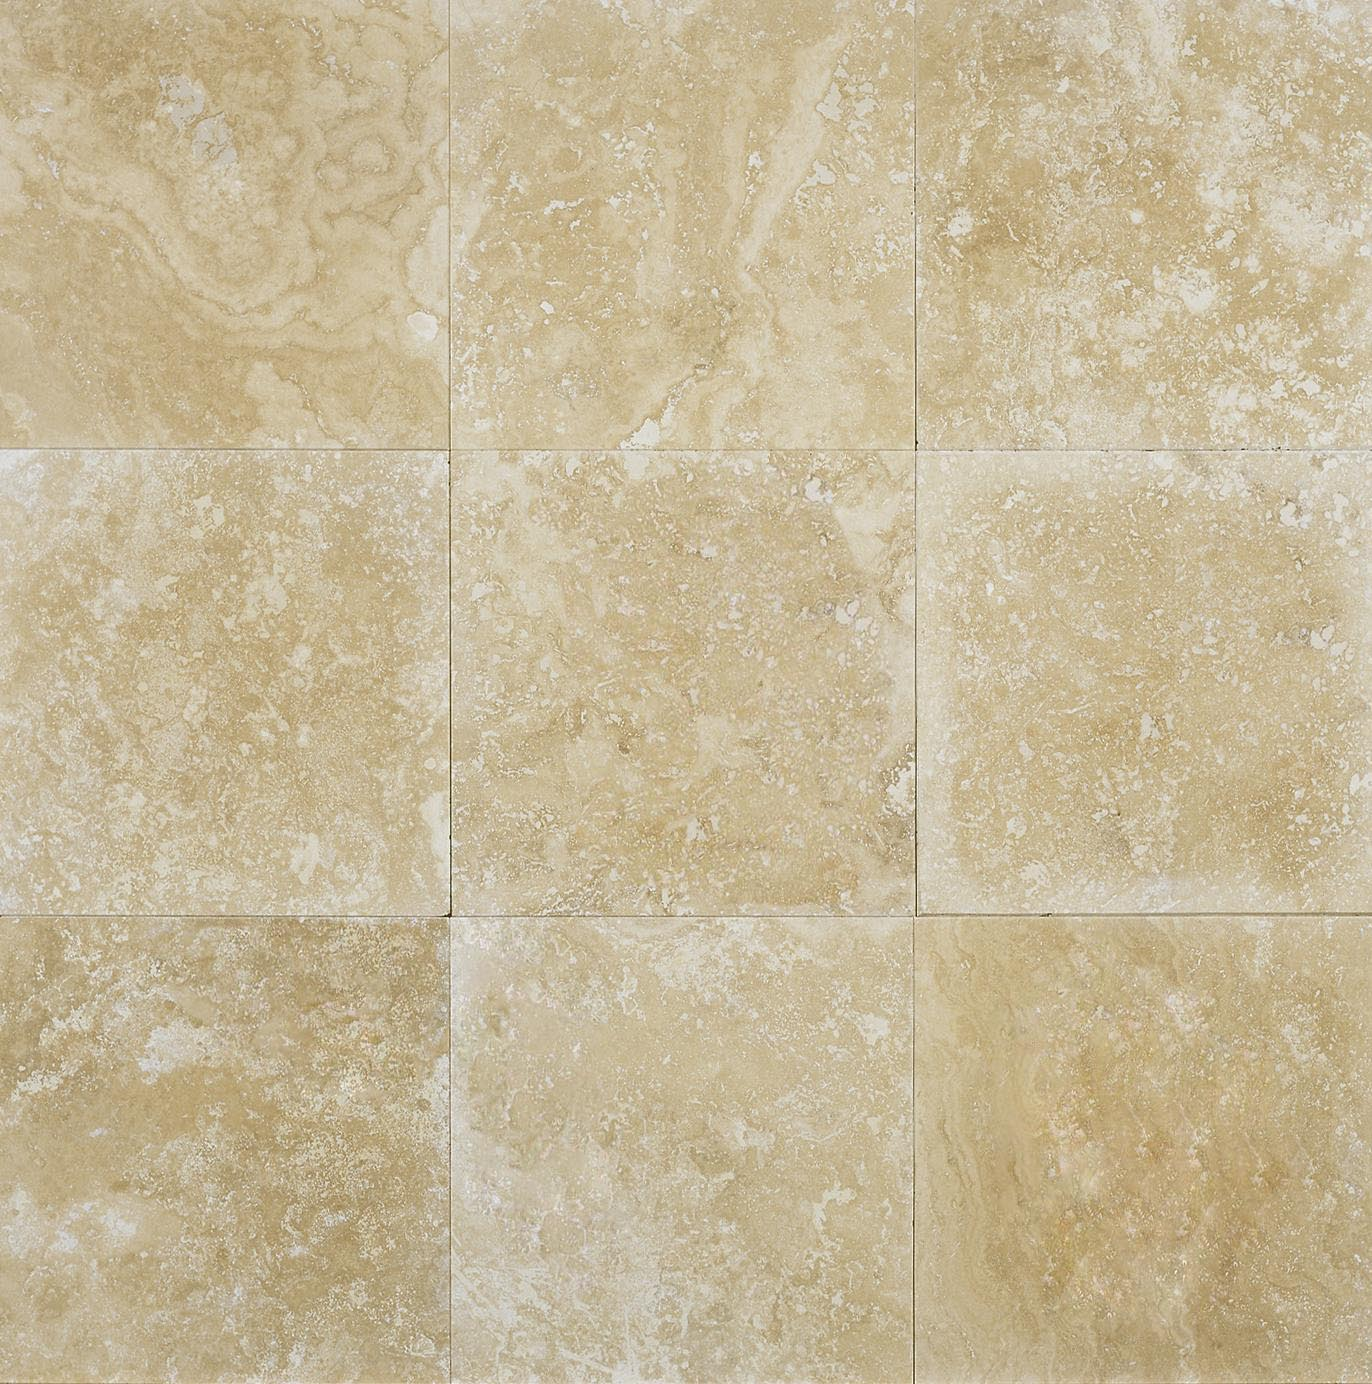 Travertine Tiles Tips